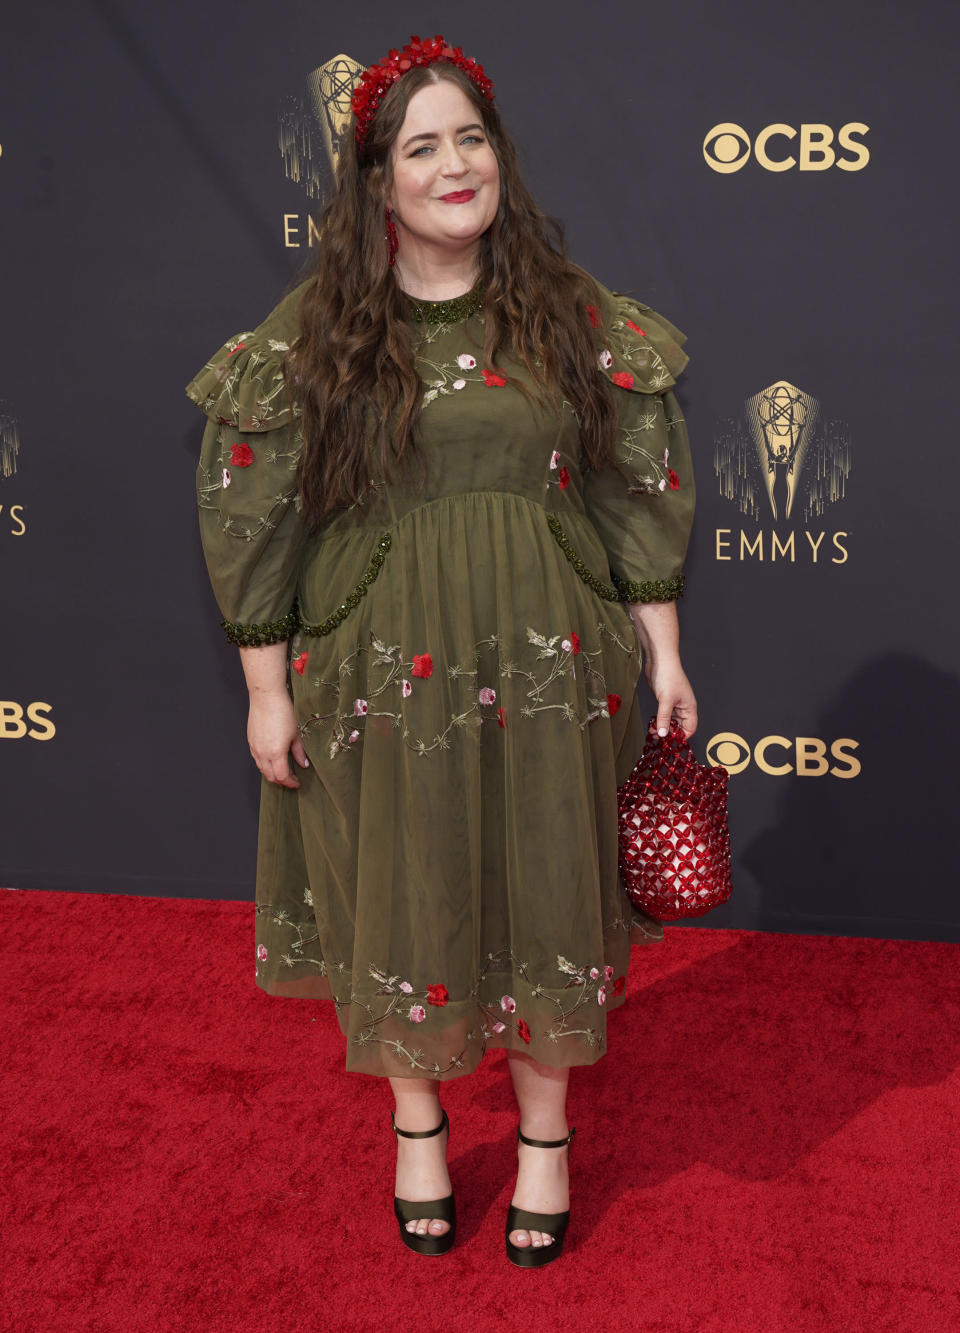 Aidy Bryant arrives at the 73rd Primetime Emmy Awards on Sunday, Sept. 19, 2021, at L.A. Live in Los Angeles. (AP Photo/Chris Pizzello)